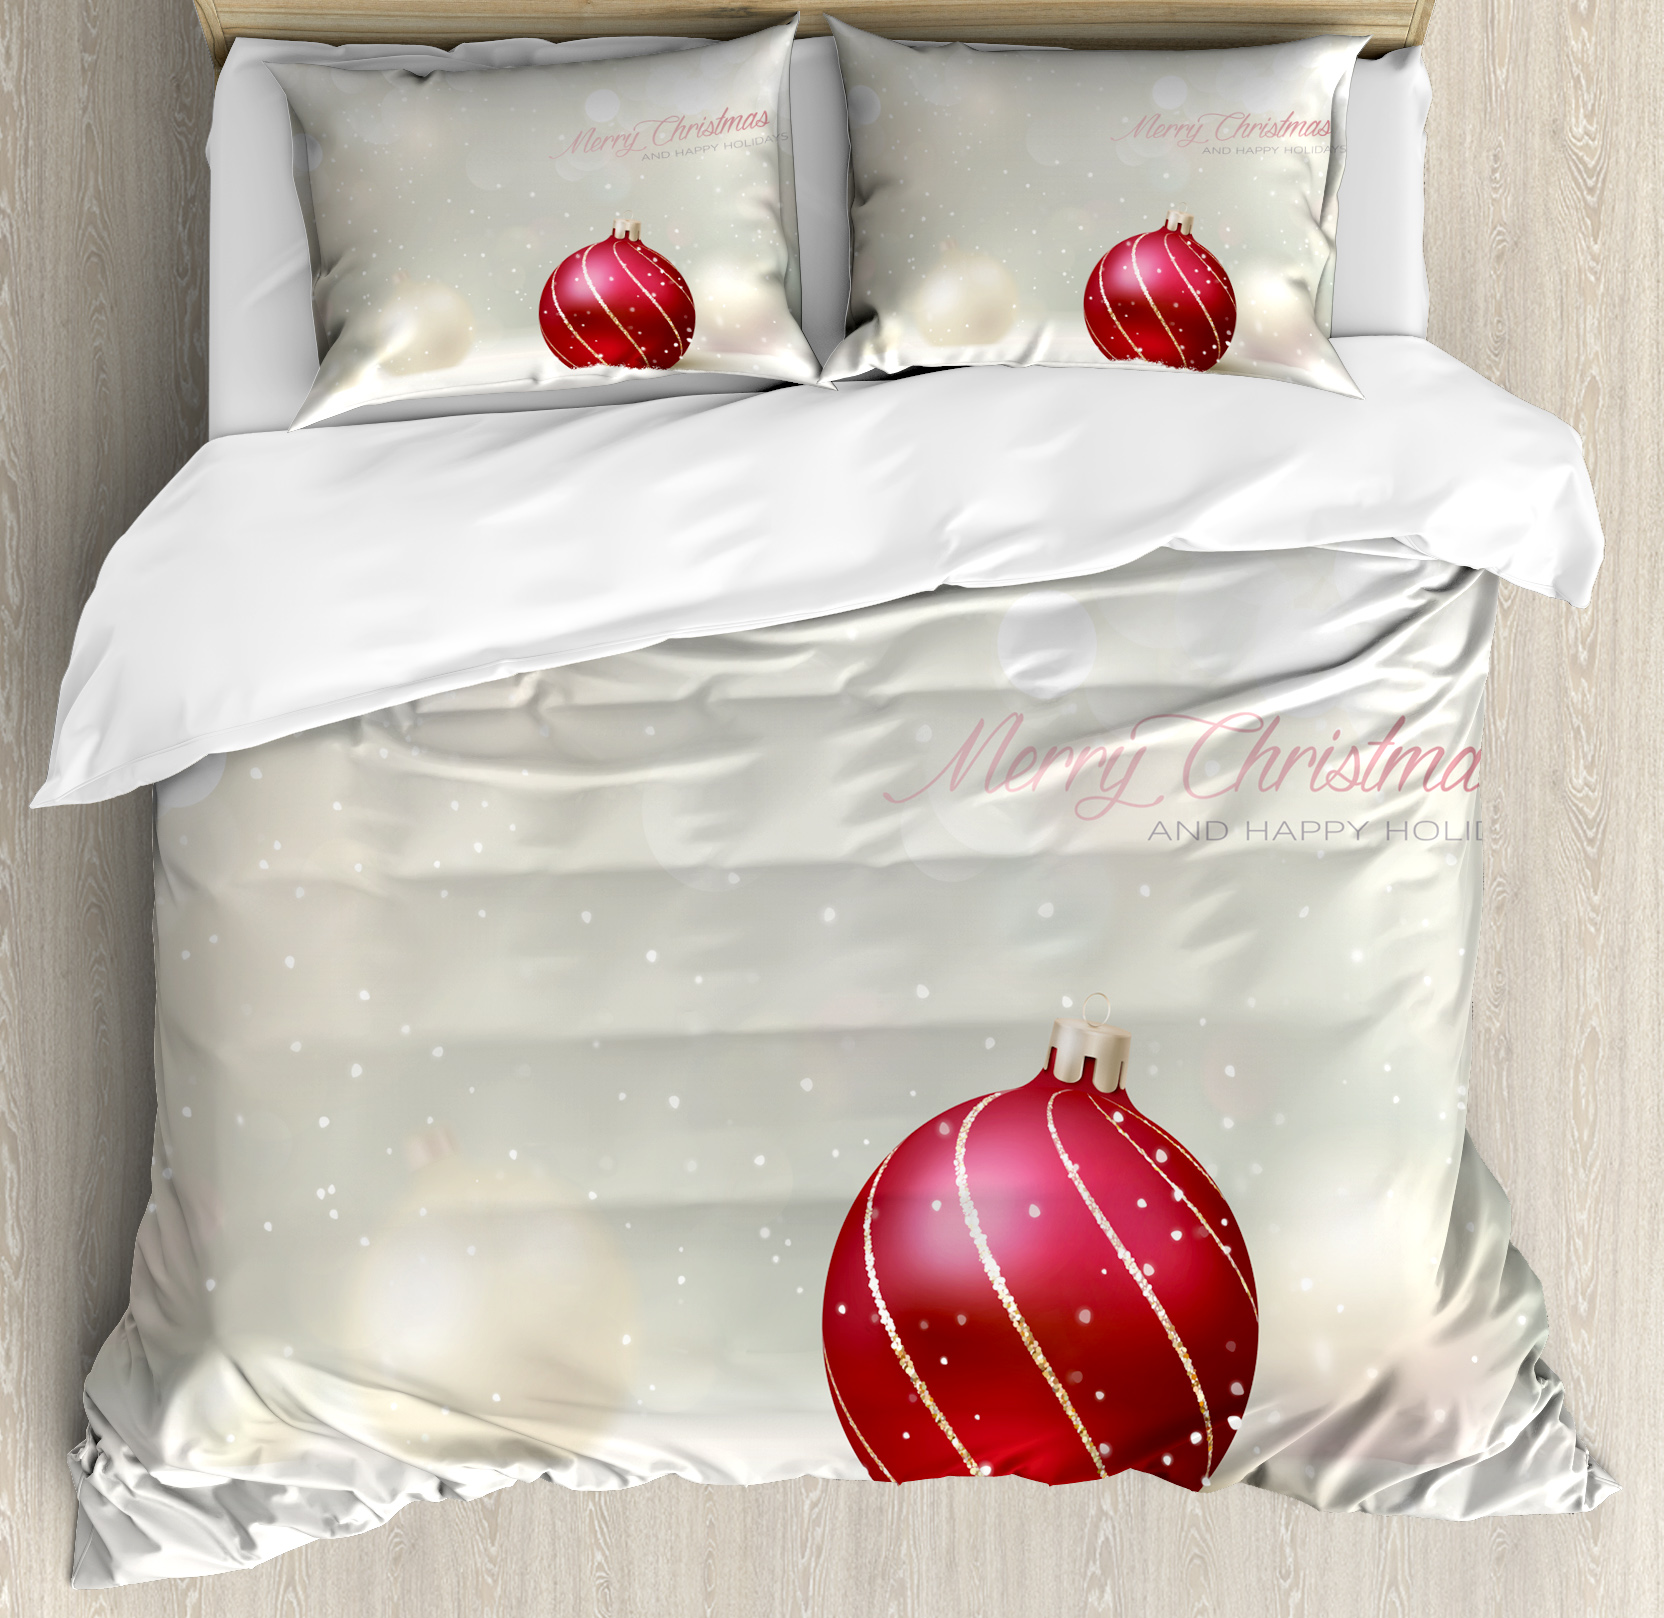 Christmas King Size Duvet Cover Set, Snow Effect Background Bauble with Curved Lines Xmas Trinket Happy Holidays, Decorative 3 Piece Bedding Set with 2 Pillow Shams, Dust Ruby Gold, by Ambesonne